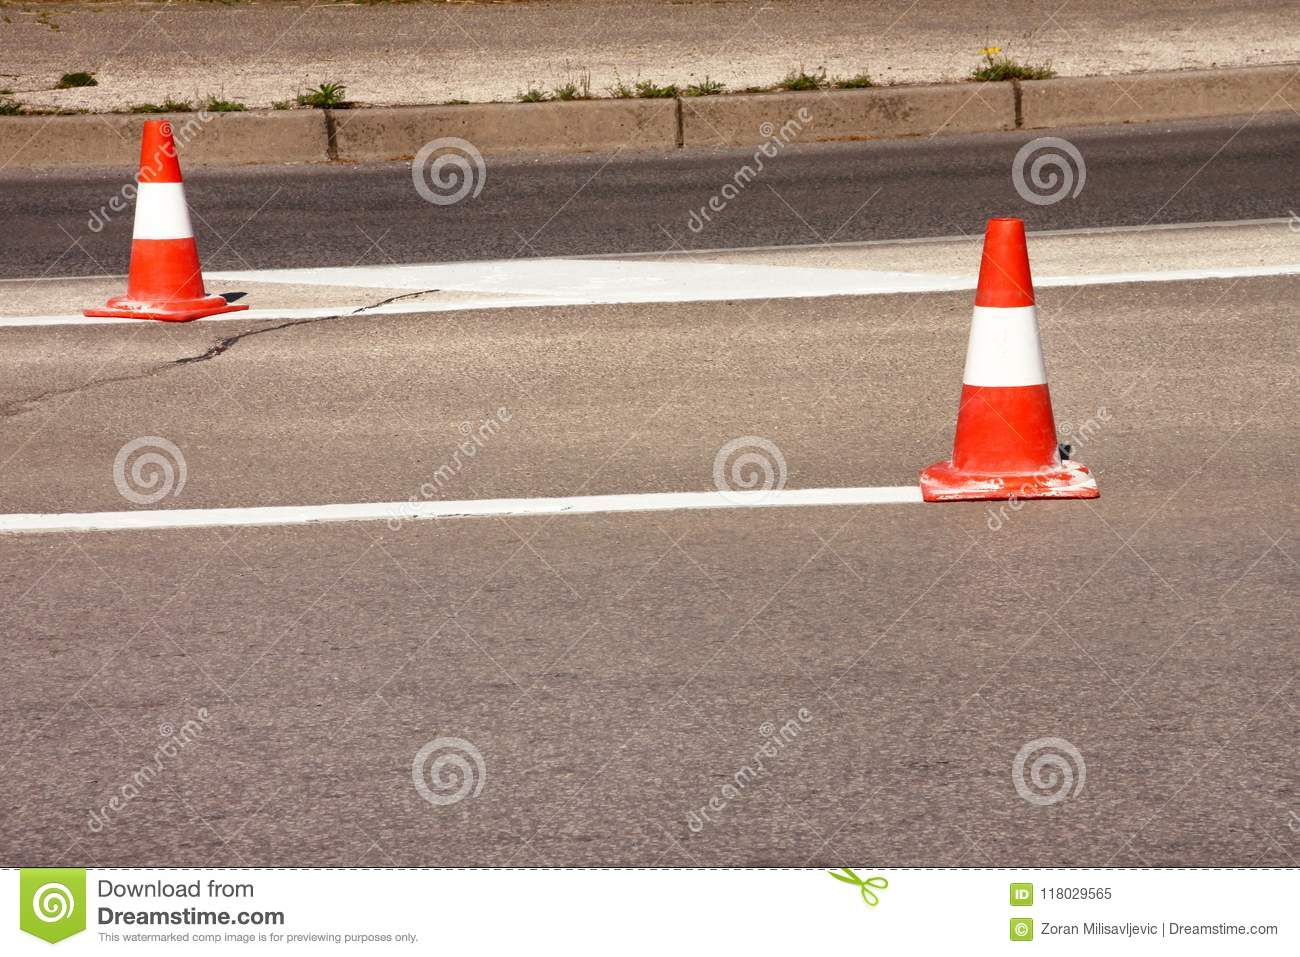 Work on road. Construction cones. Traffic cone, with white and orange stripes on asphalt. Street and traffic signs for signaling.